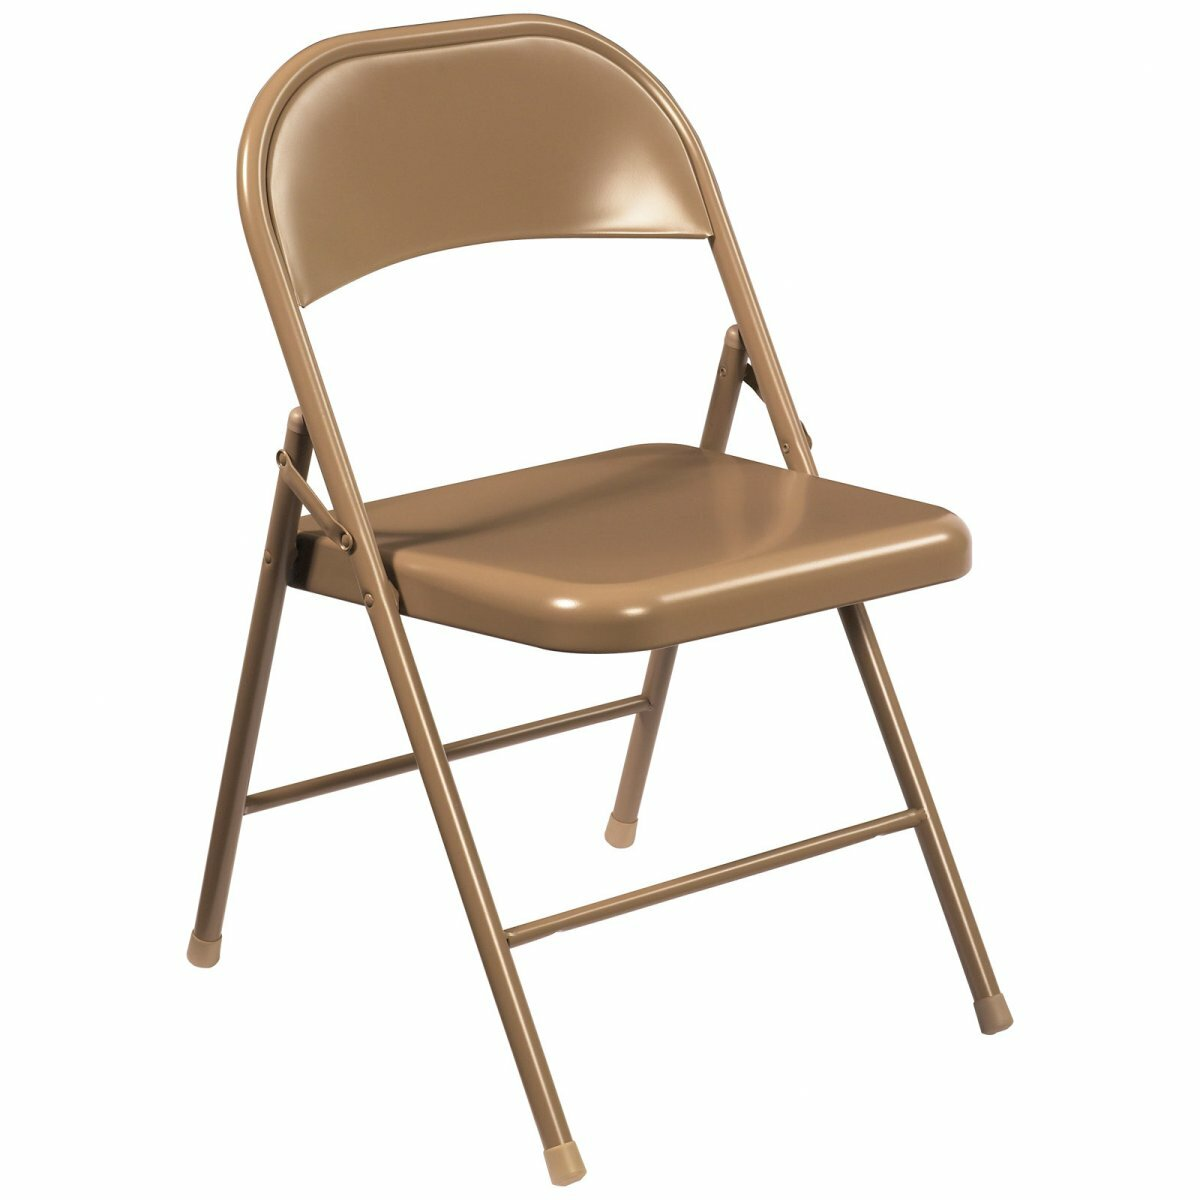 National Public Seating mercialine Steel Folding Chair & Reviews